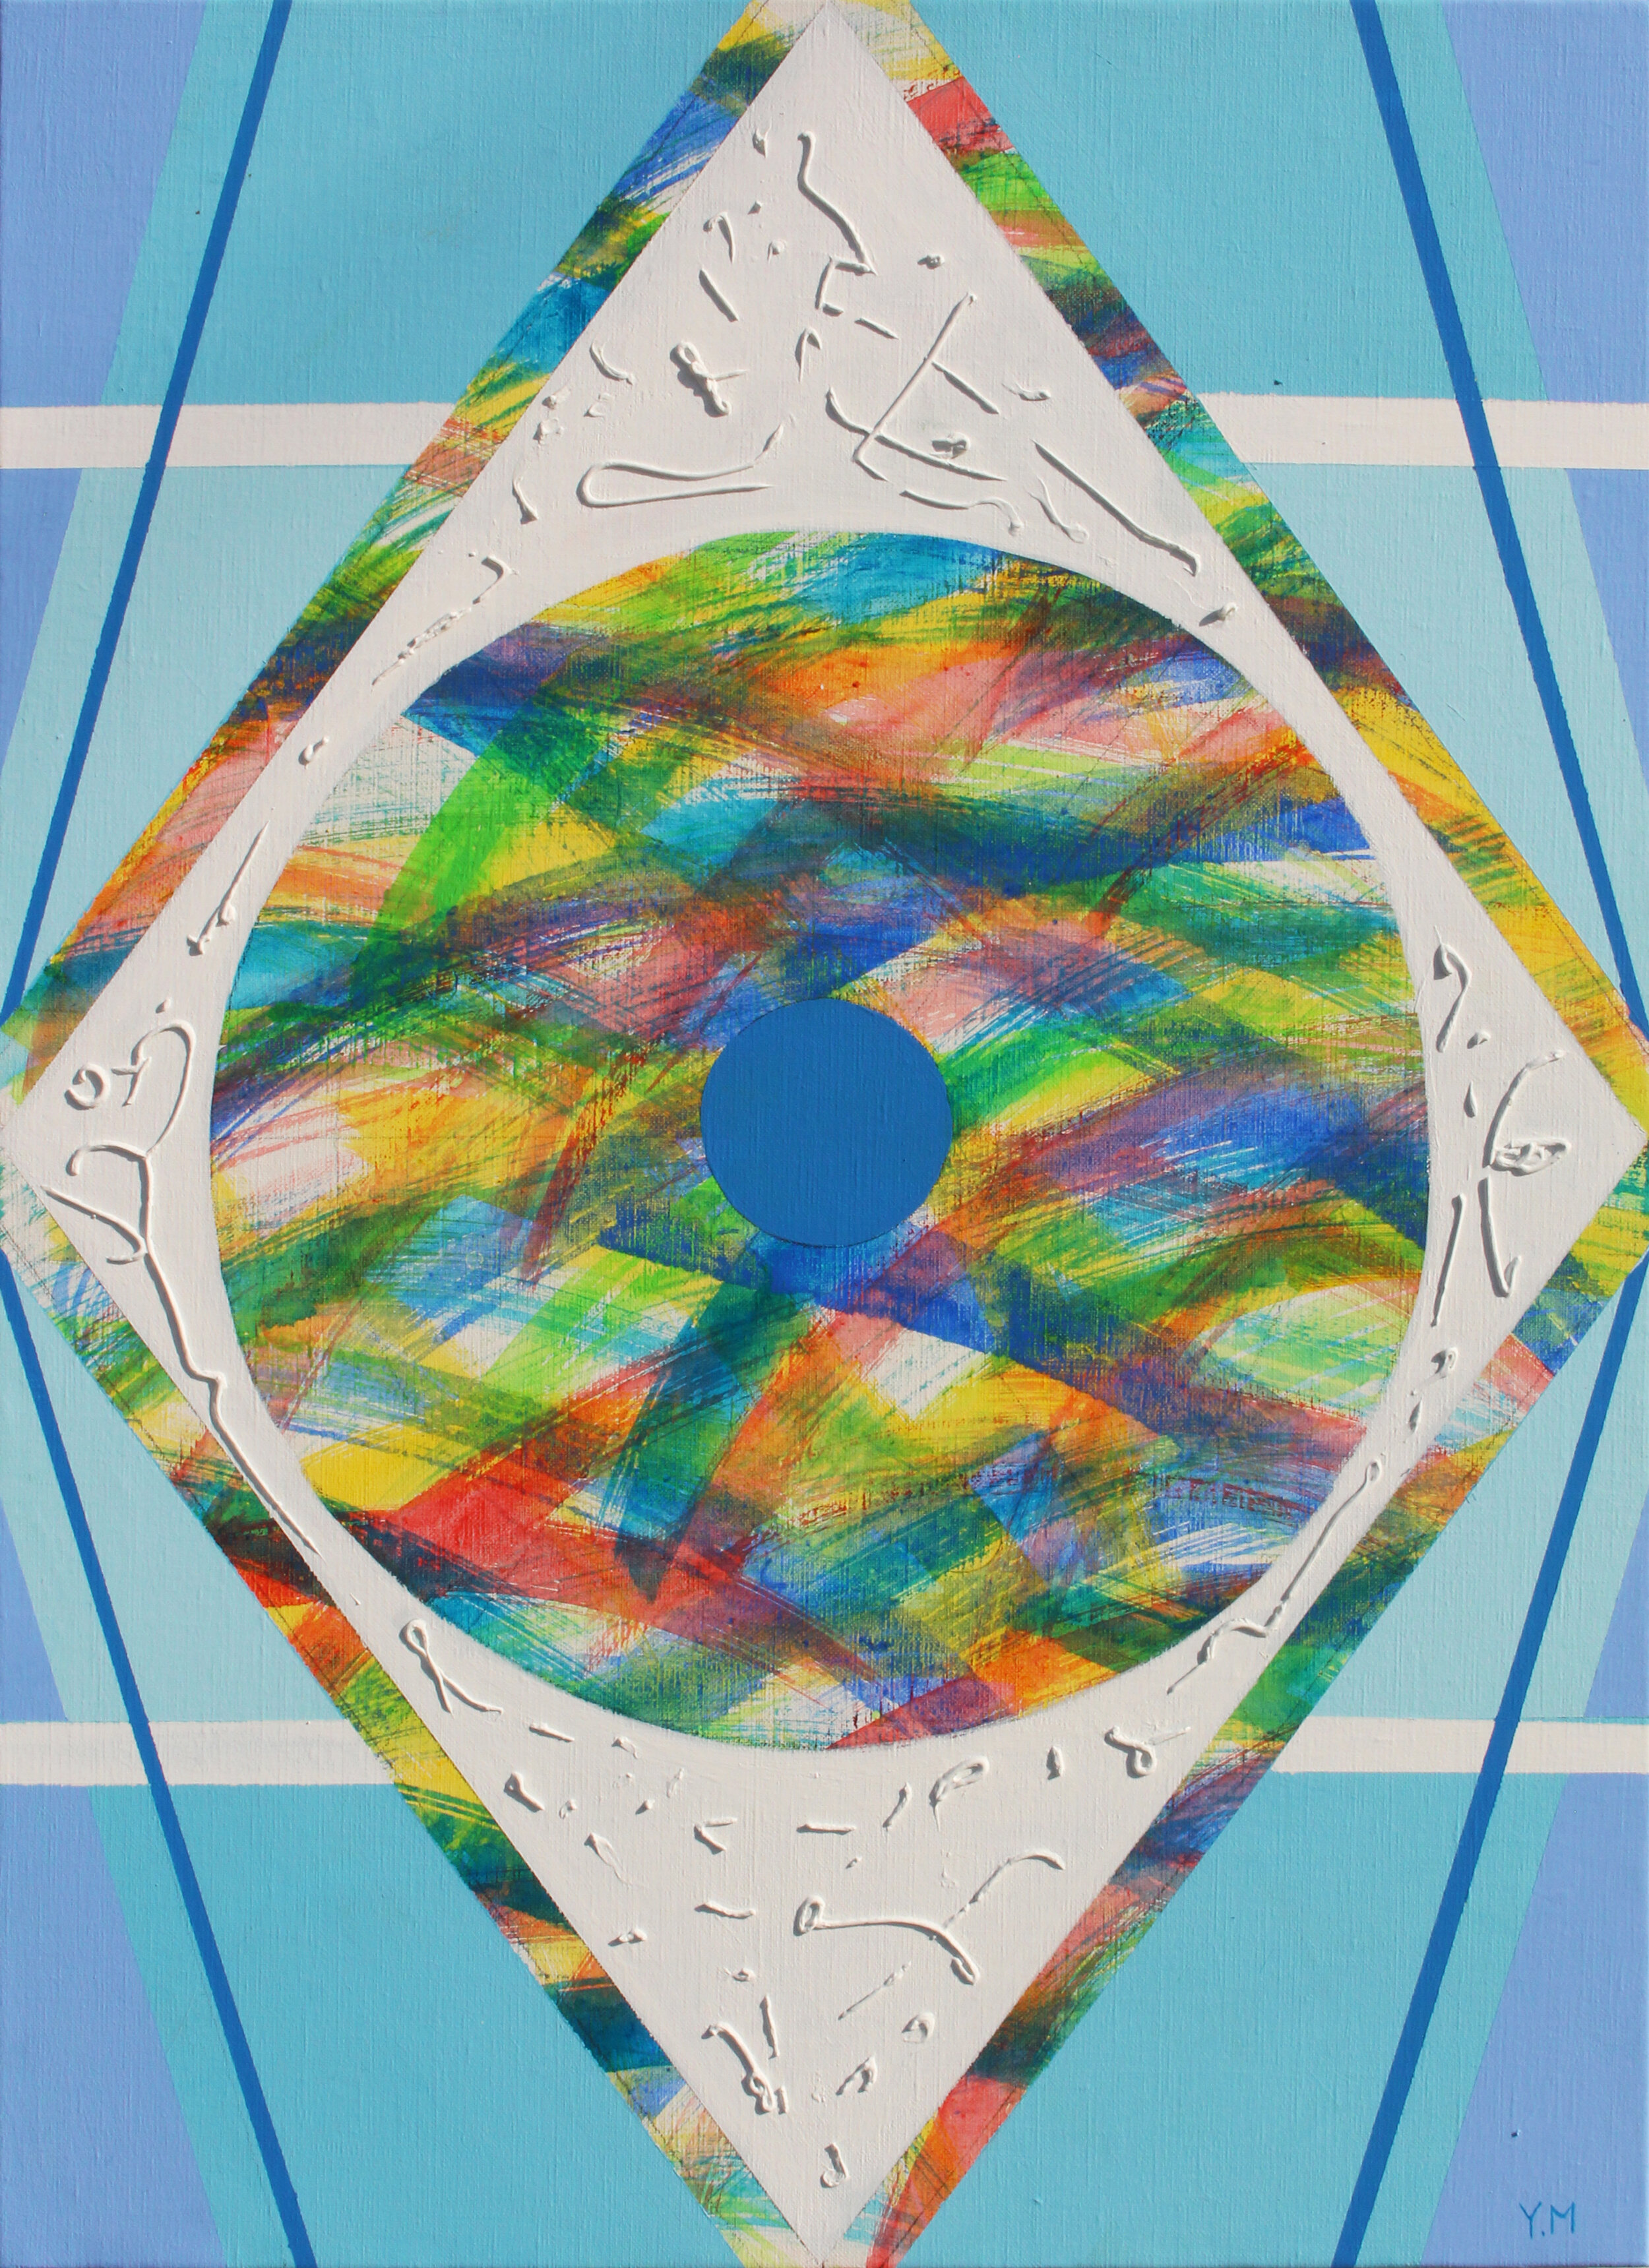 """Rainbow Sky A, 2019, Acrylic on Canvas, 29"""" x 21""""  Vertical rolled wall-hung painting with symmetrical circles, squares, lines in rainbow color"""